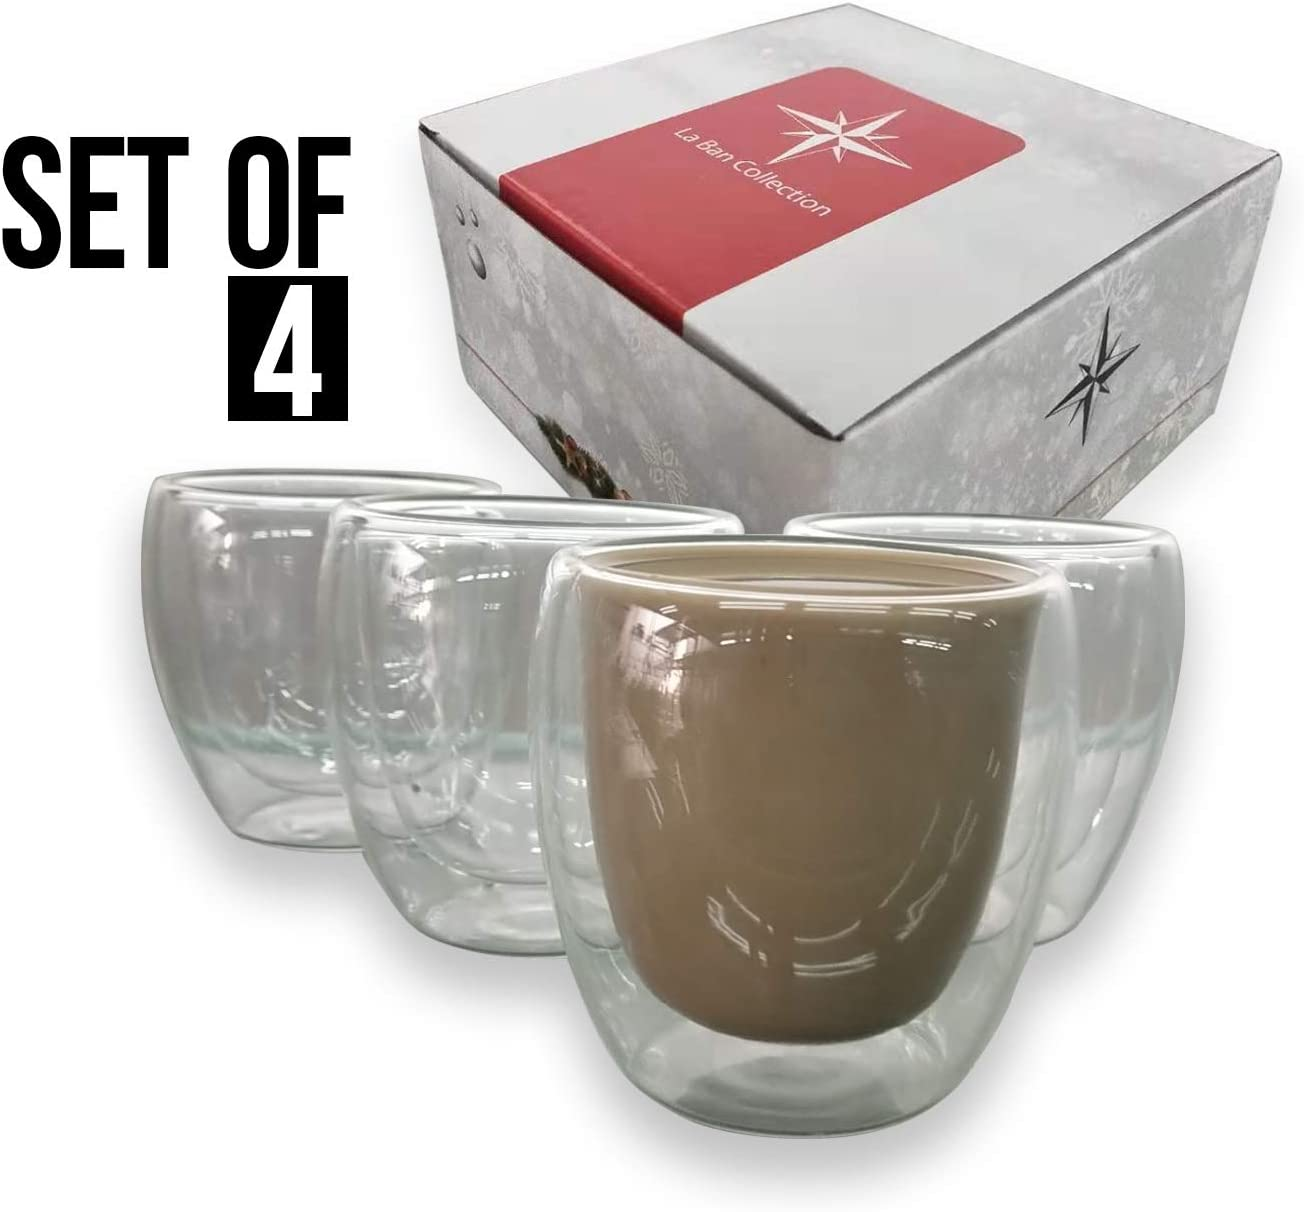 Espresso Cup Shot Glass 4 Ounces Double Wall Thermal Insulated 4 in 1 Set With Sleek Gift Box by La Ban Collection Ideal Gift For Easter, Party, House Warming, New Home, Kitchen, Office and Bulk